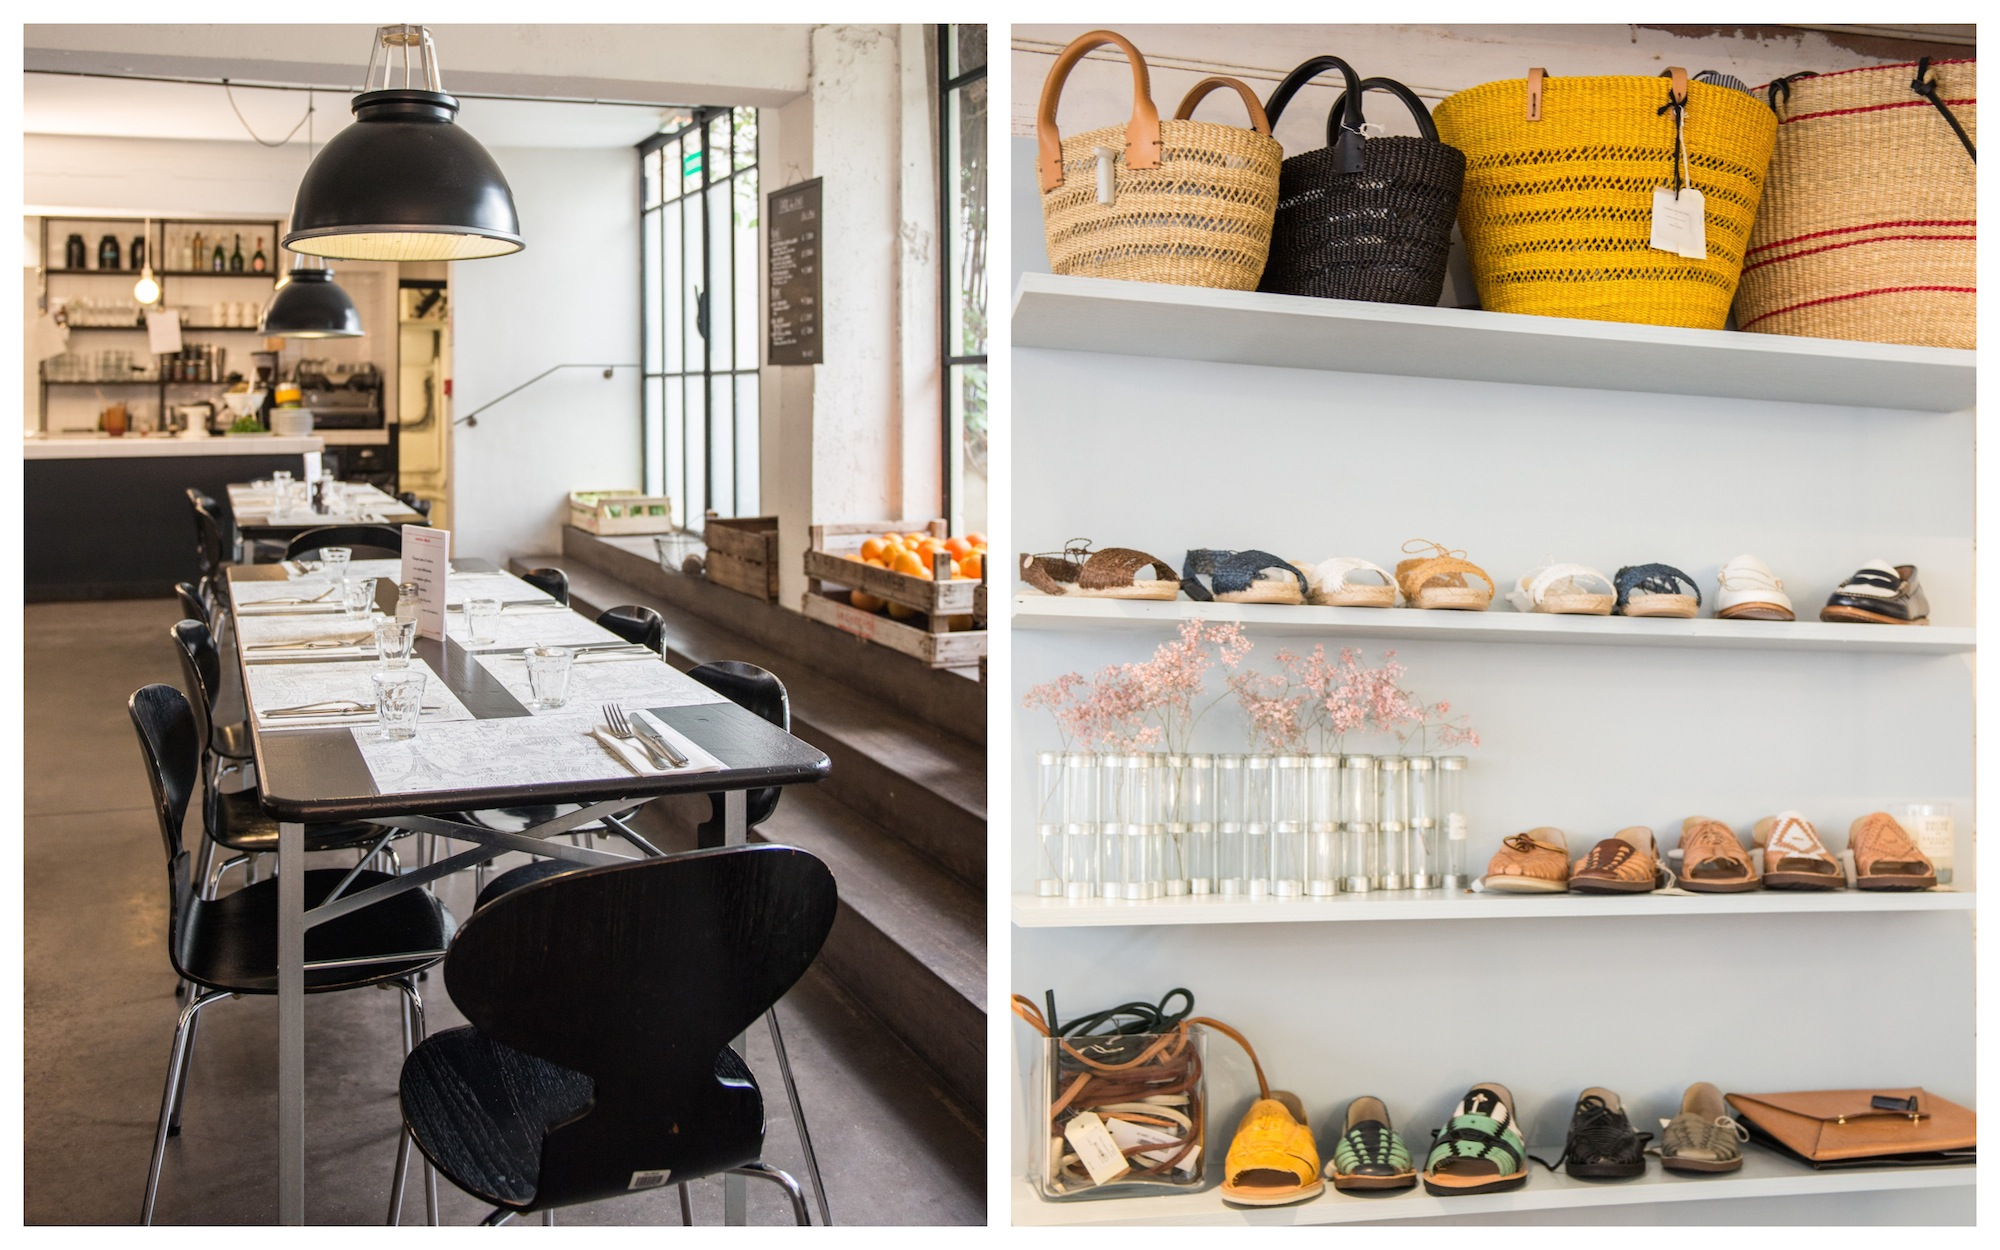 HiP Paris Blog rounds up Paris' best concept store cafes, like at Merci, with its slick black tables and chairs in warehouse style surroundings (left). Baskets and shoes for summer at Merci concept store in Paris (right).